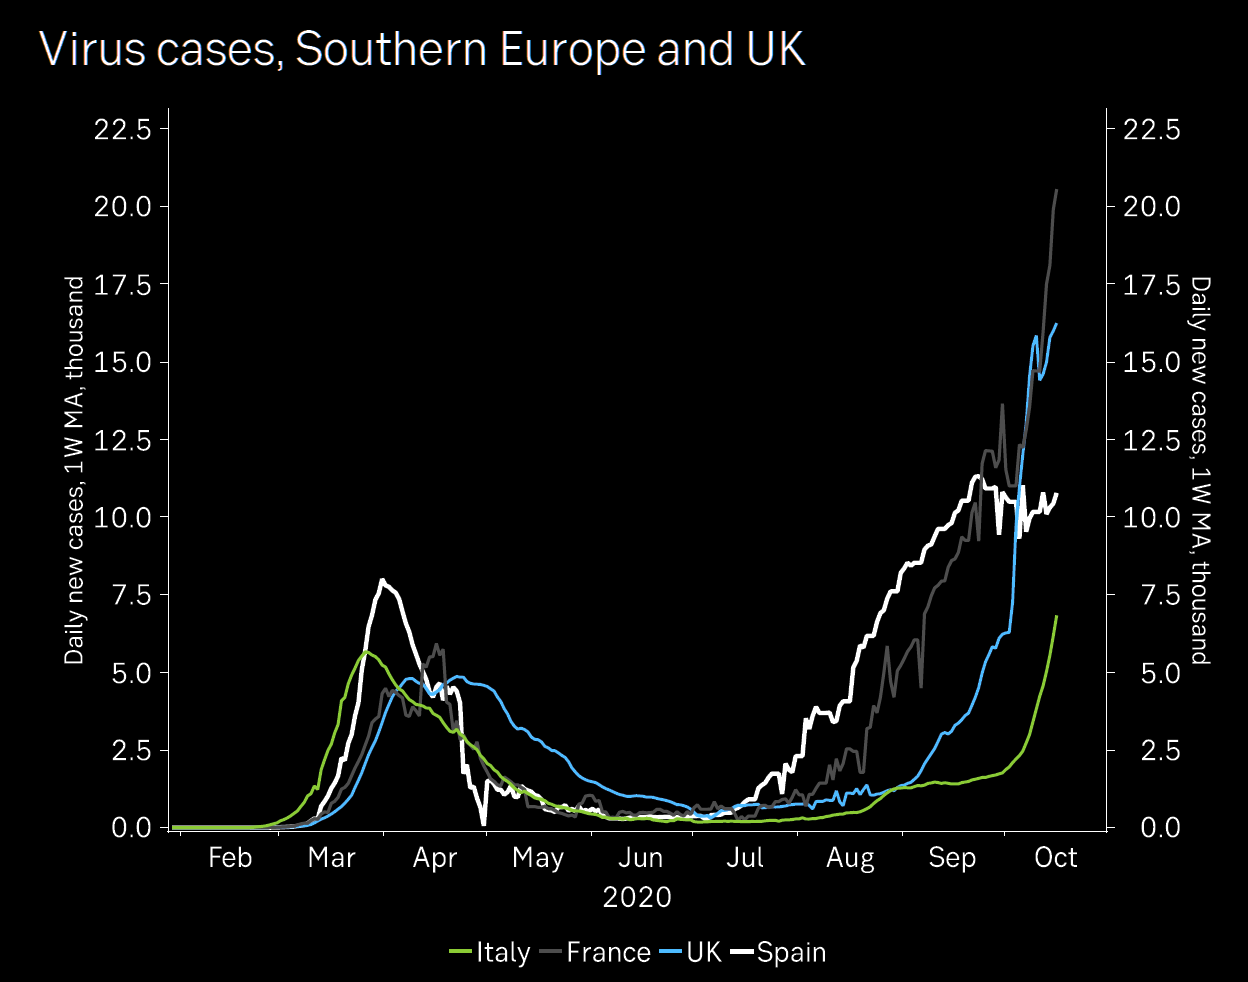 COVID cases in the UK and Southern Europe